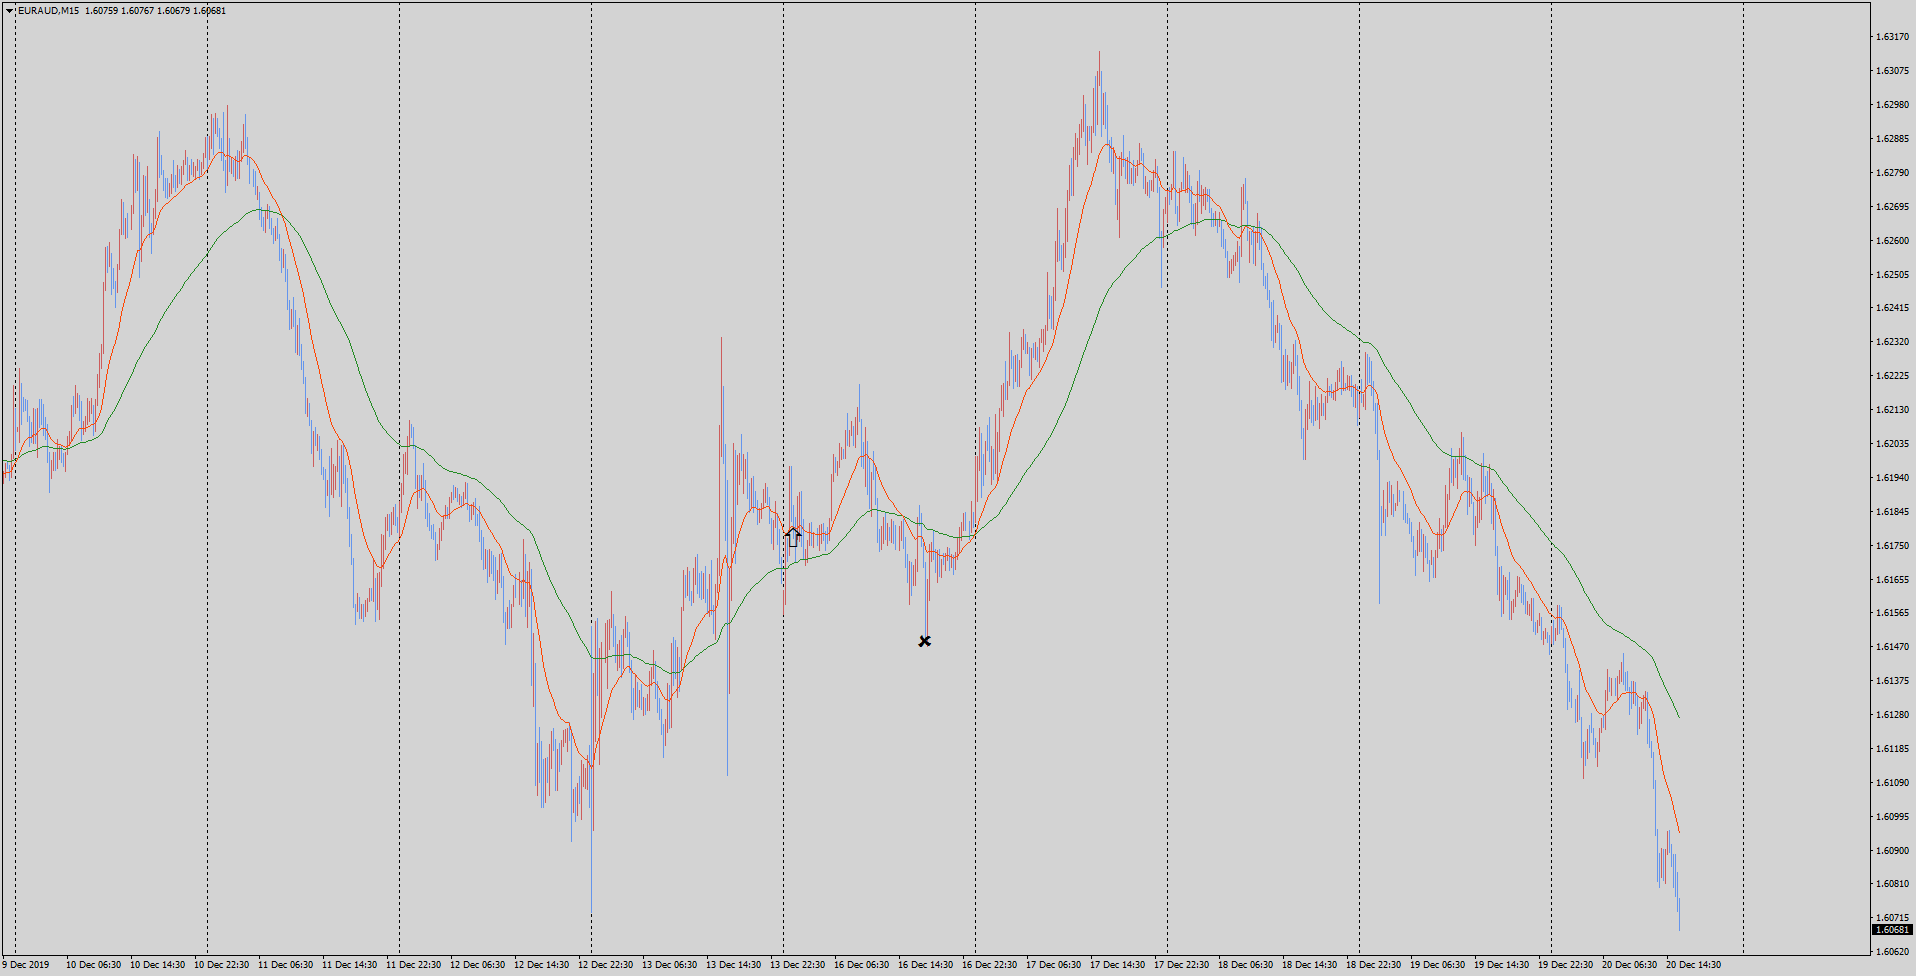 19-12-20-euraud-m15-tradexfin-limited.png